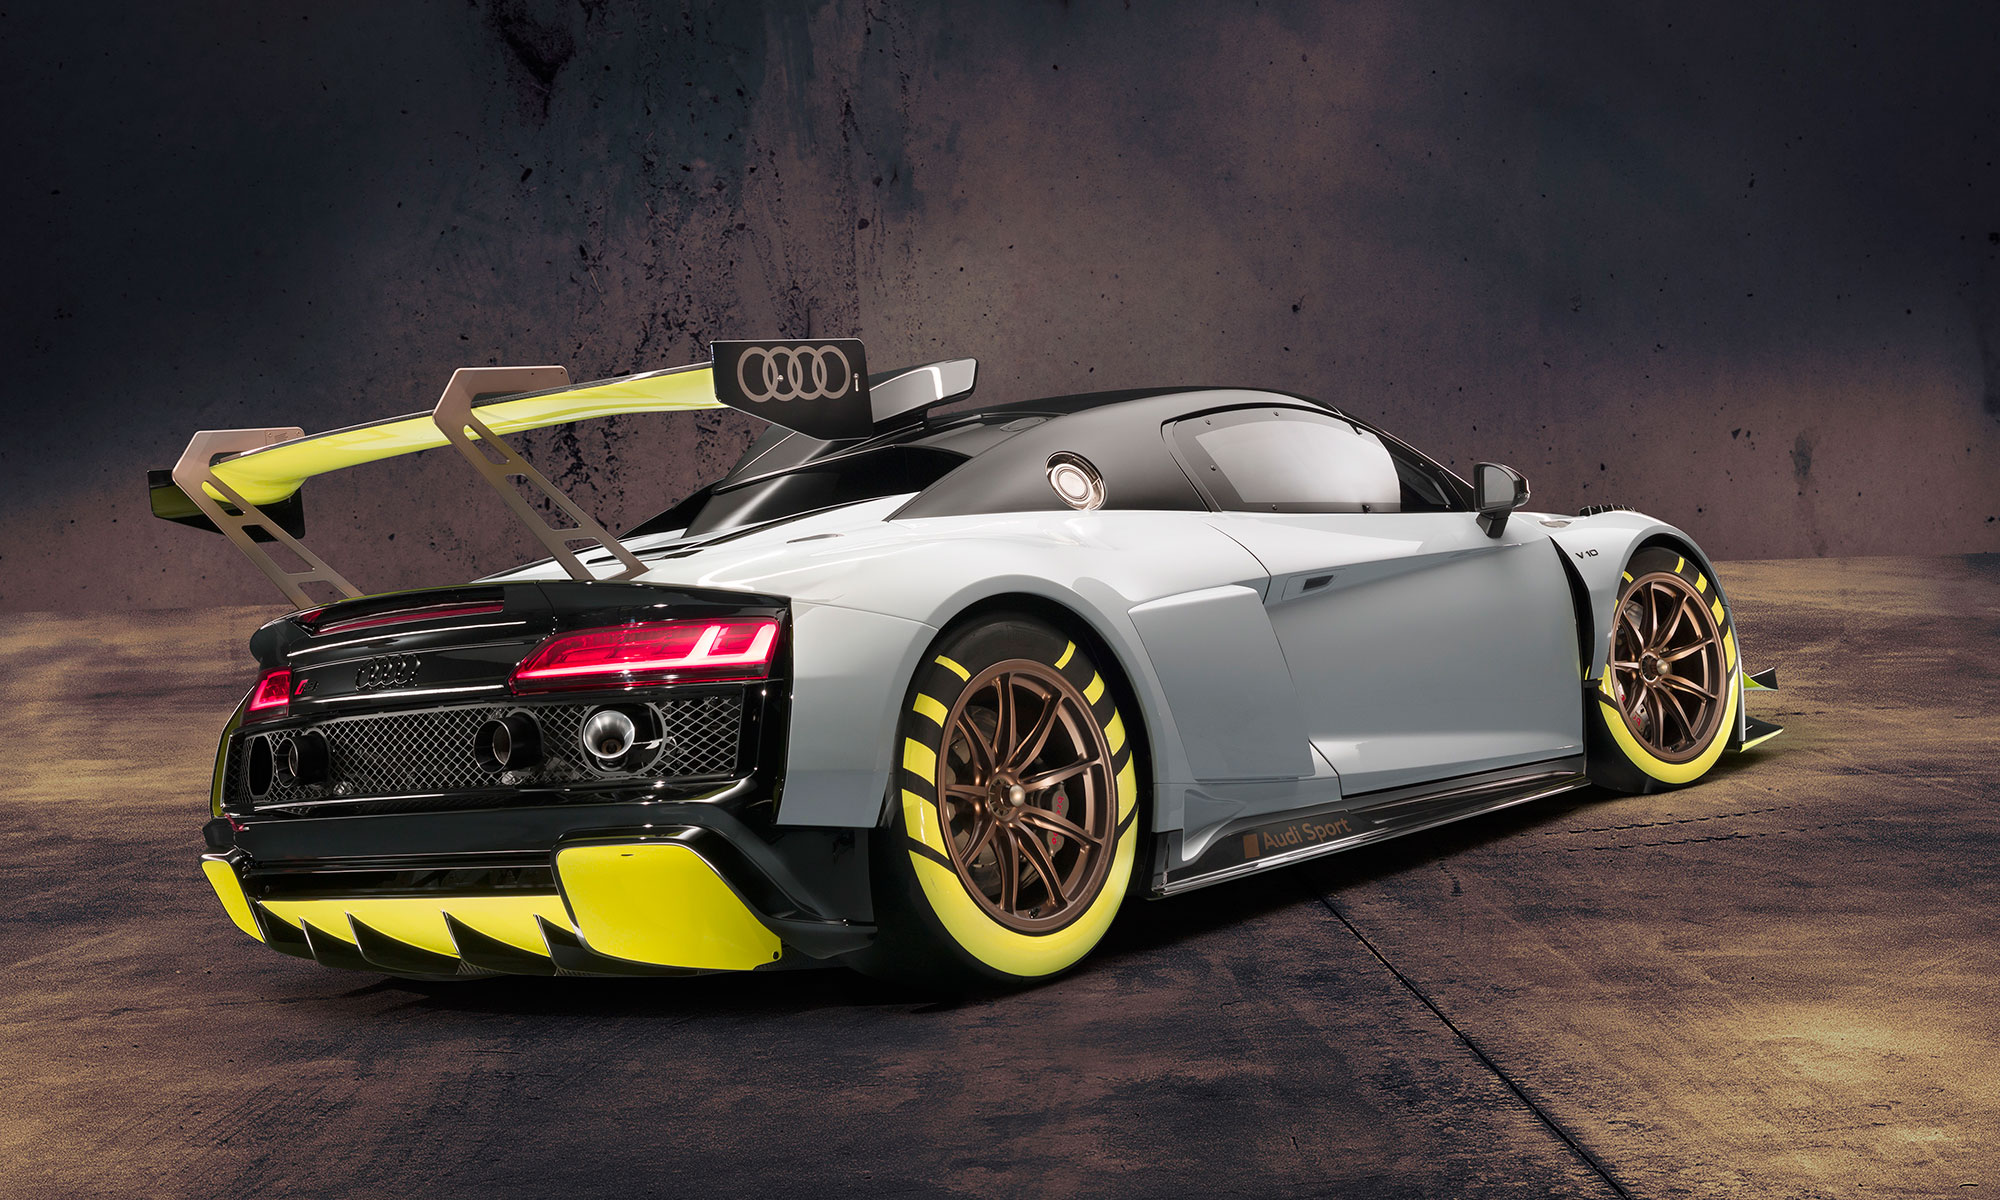 2020 Audi R8 LMS GT2 Is A Wild Race Car With 630 ...